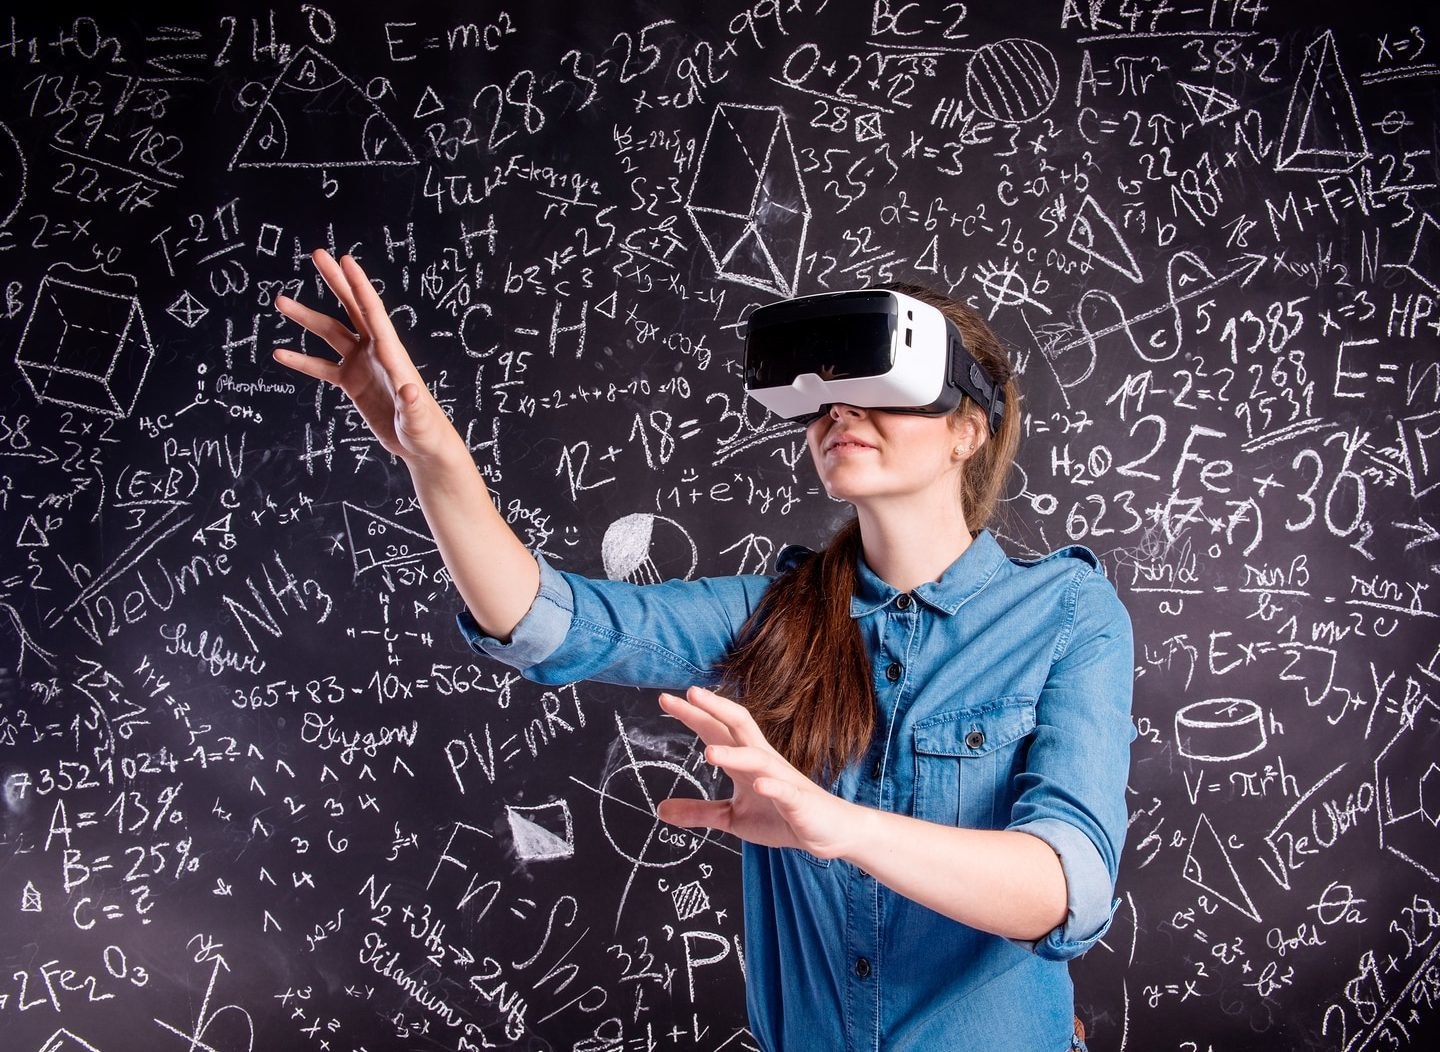 Does VR have a role to play in the classroom?